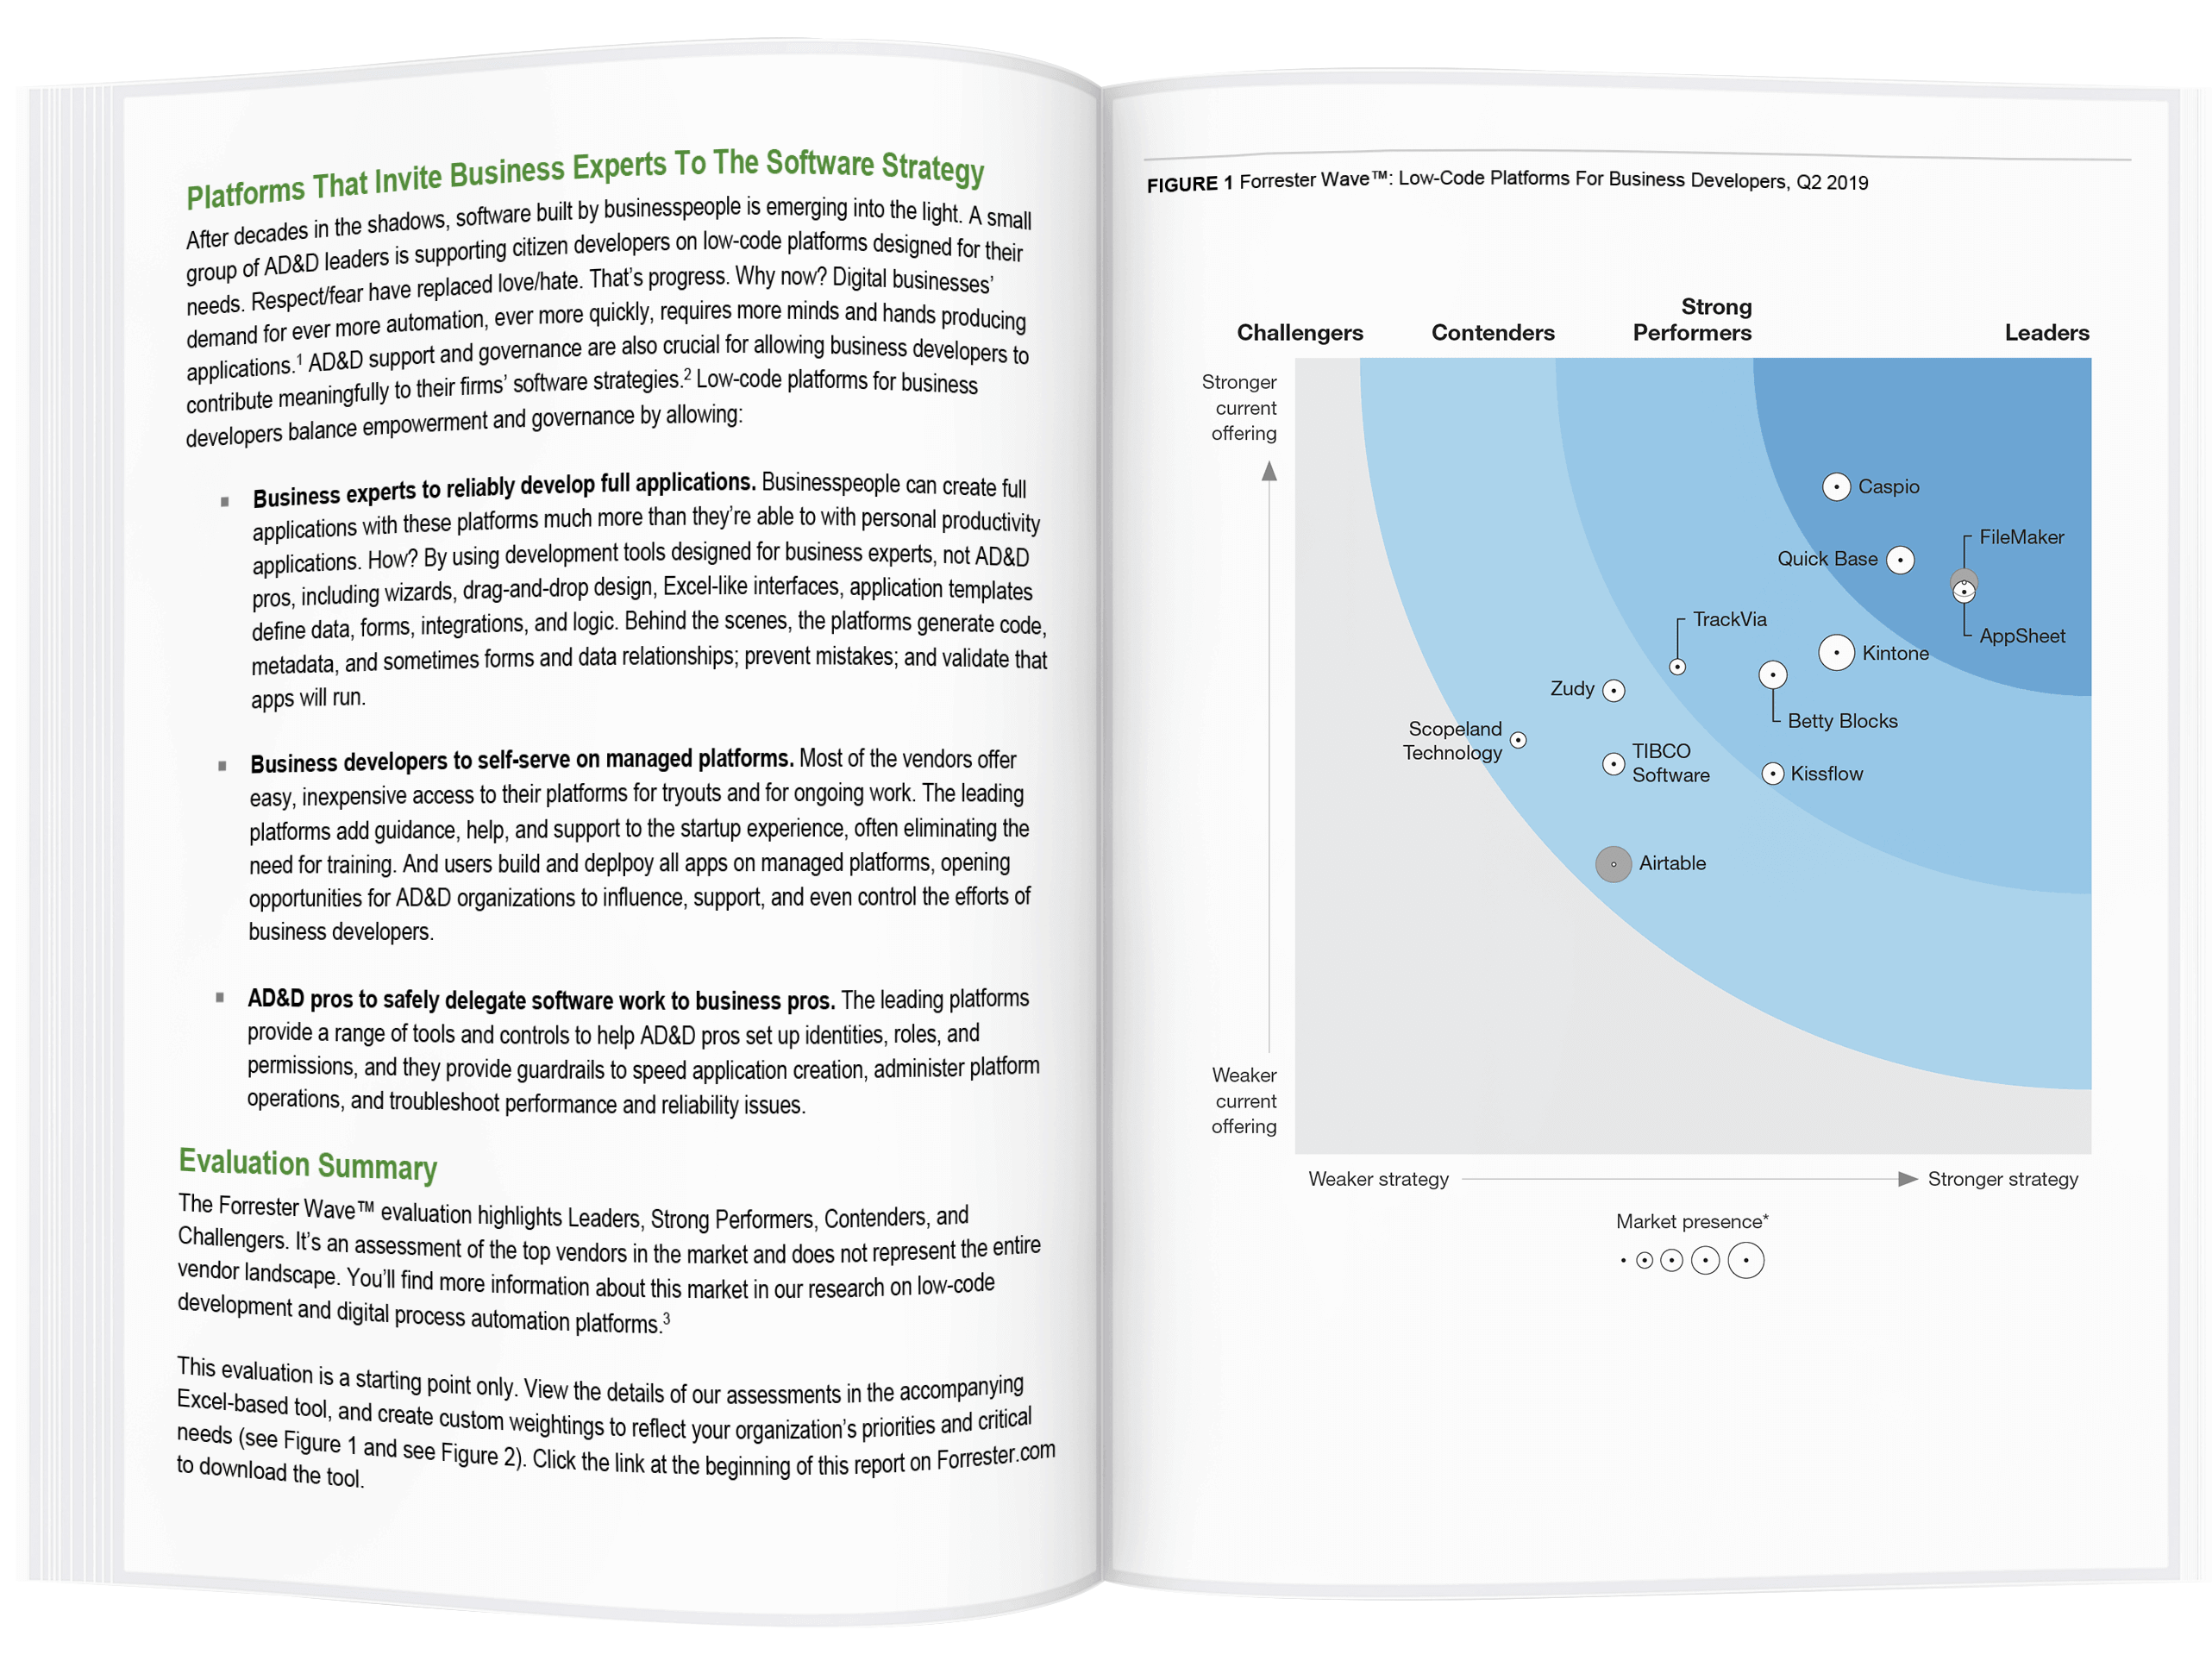 Forrester Wave: Low-Code Development Platforms 2019 for Business Developers